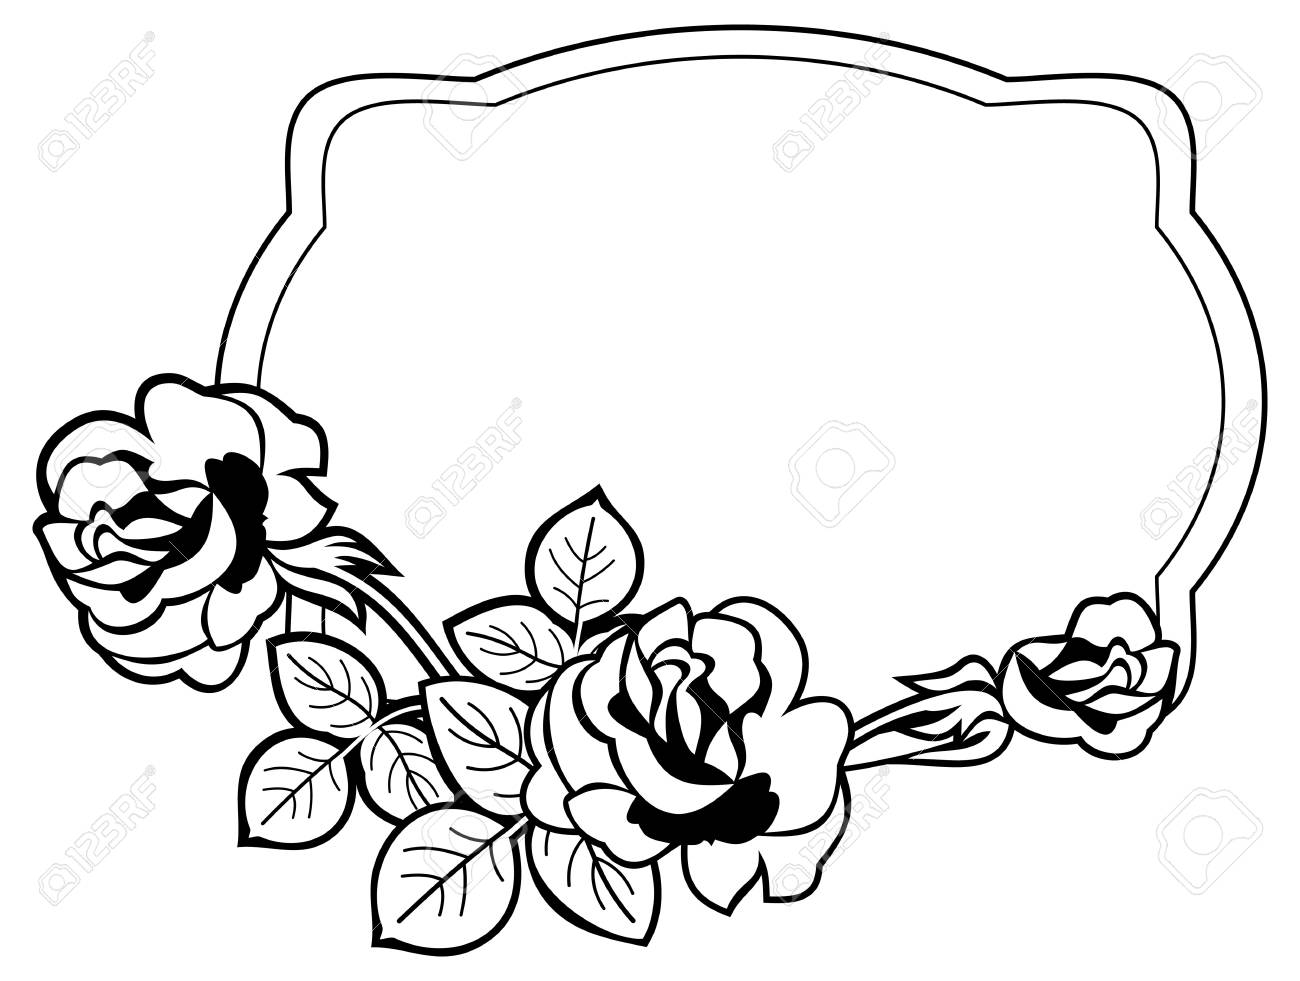 Black And White Frame With Stylized Roses Silhouettes. Vector ...